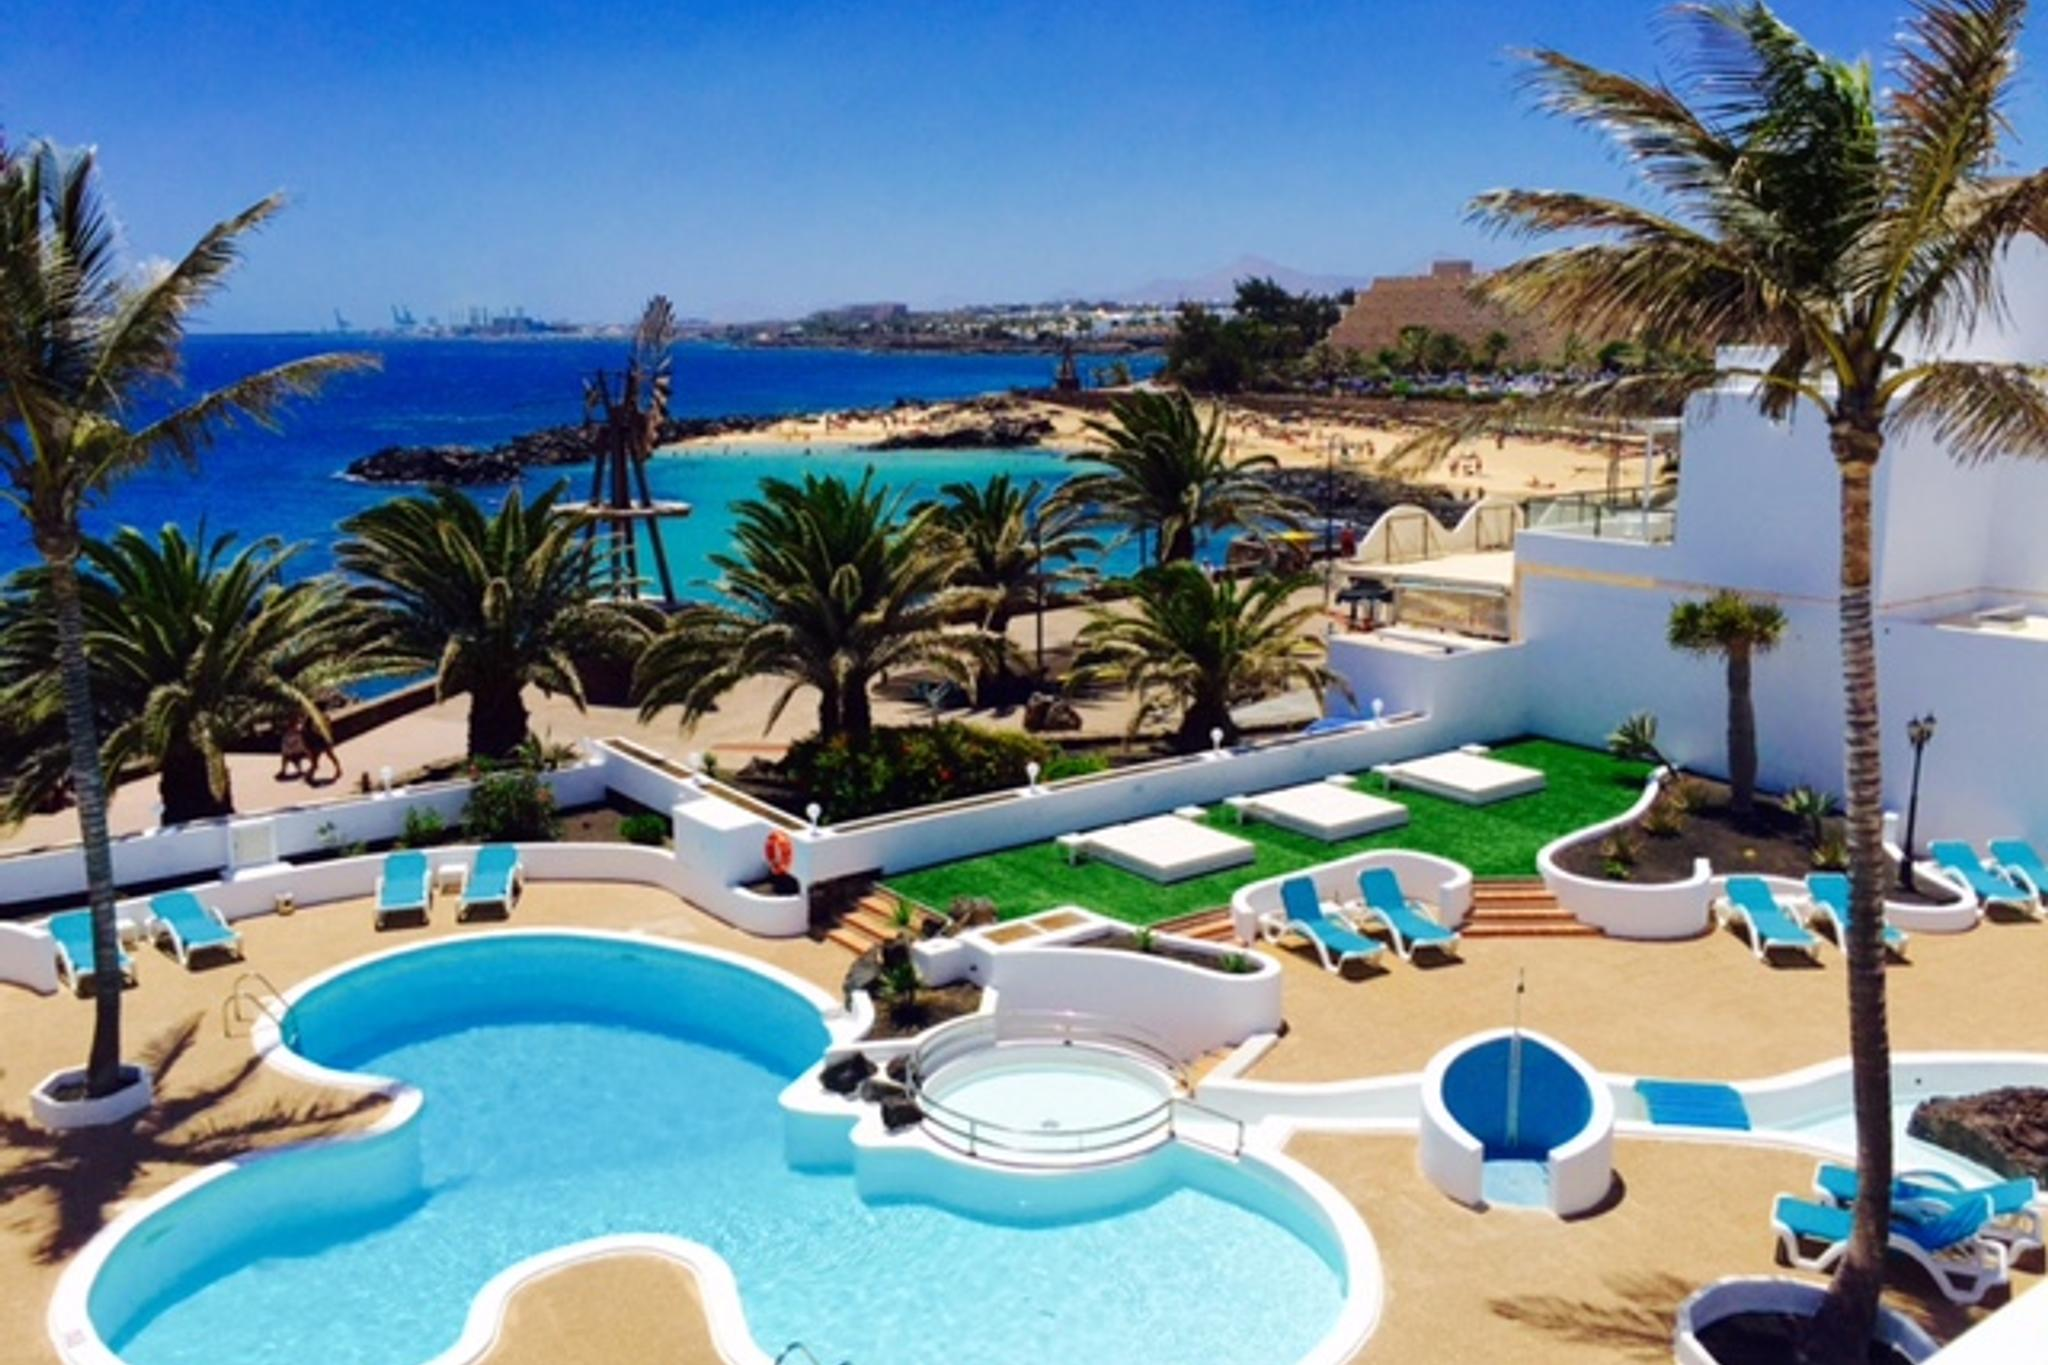 Neptuno Suites | Costa Teguise, Lanzarote, Canary Islands | Welcome to our hotel - 1